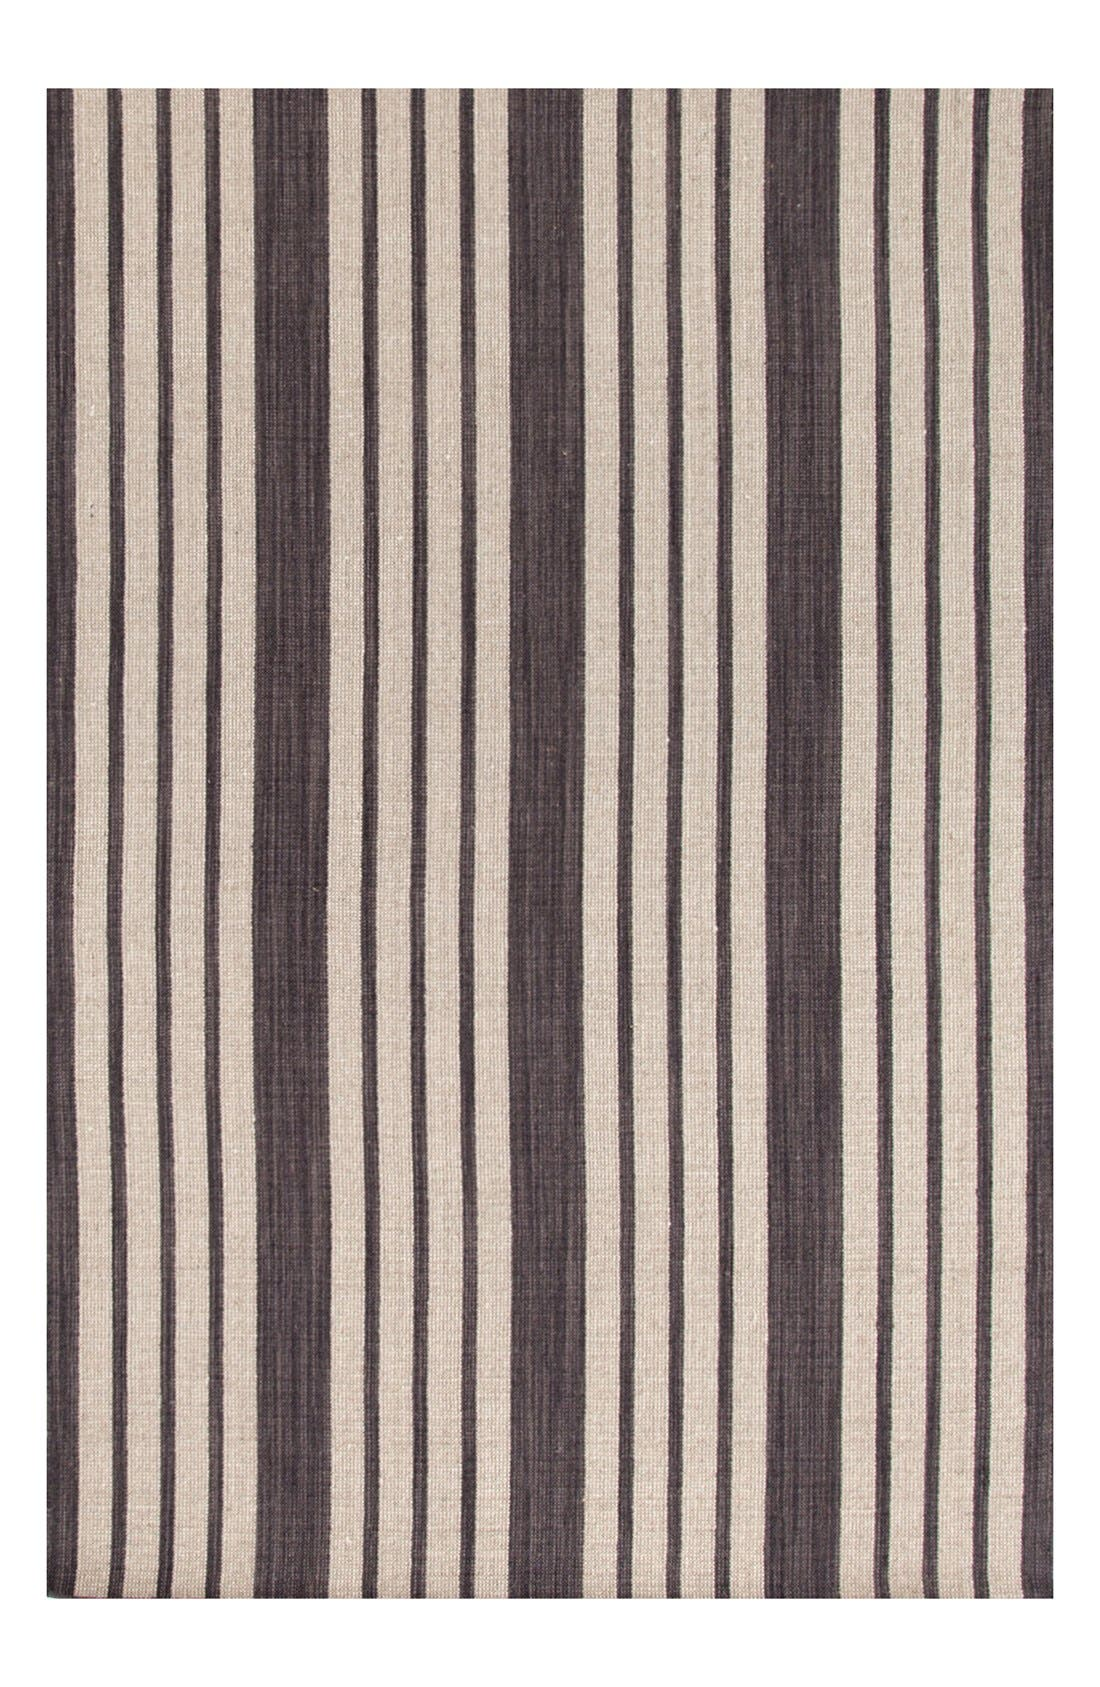 'Lenox' Stripe Rug,                             Alternate thumbnail 2, color,                             CHARCOAL